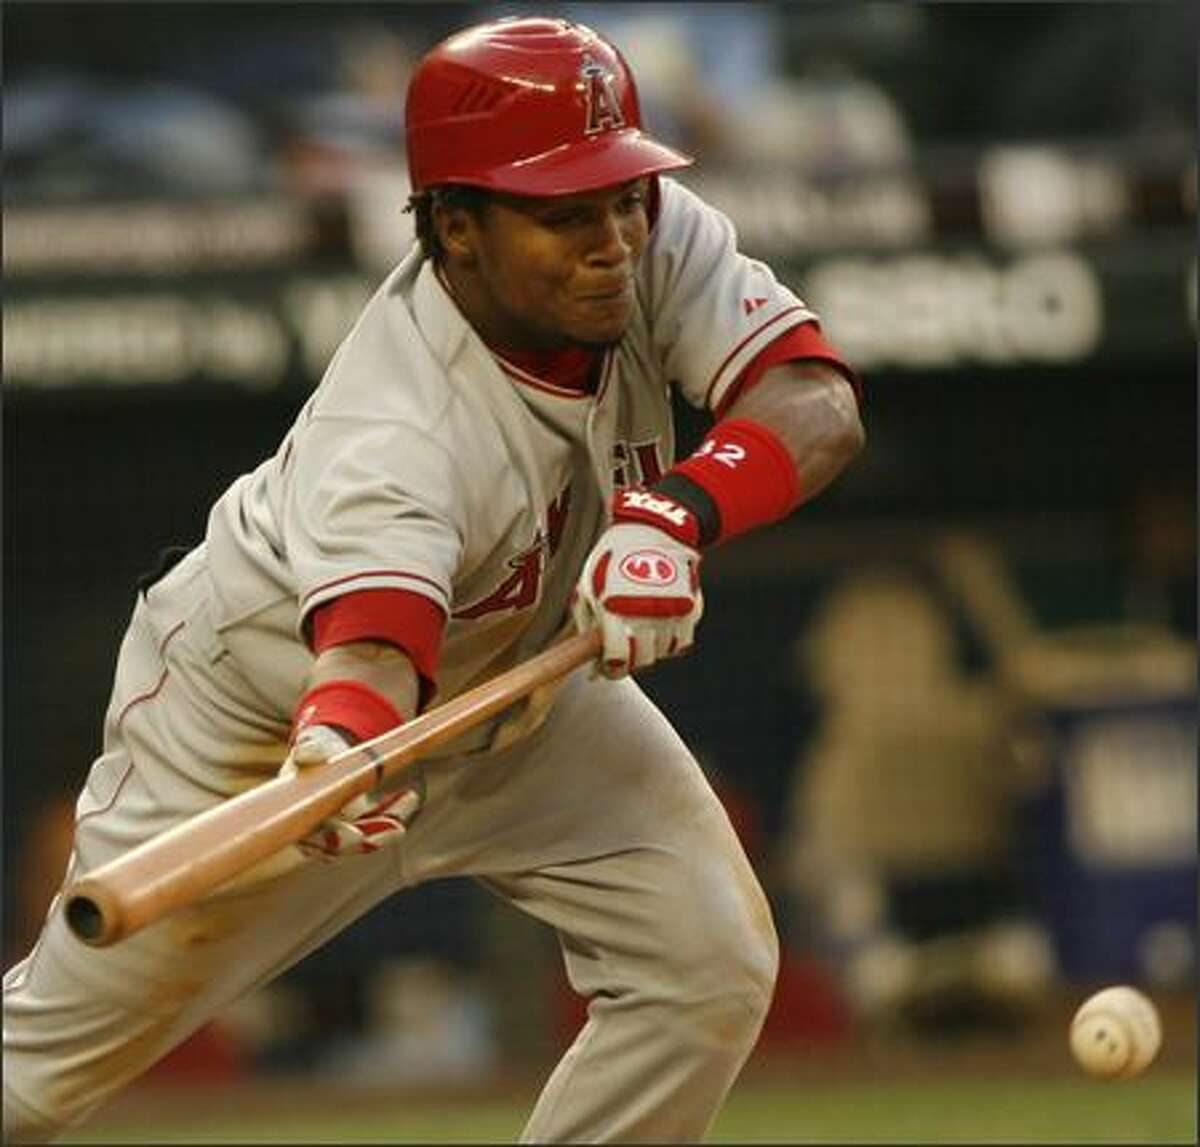 Los Angeles' Erick Aybar drops a sacrifice bunt in the fourth inning.